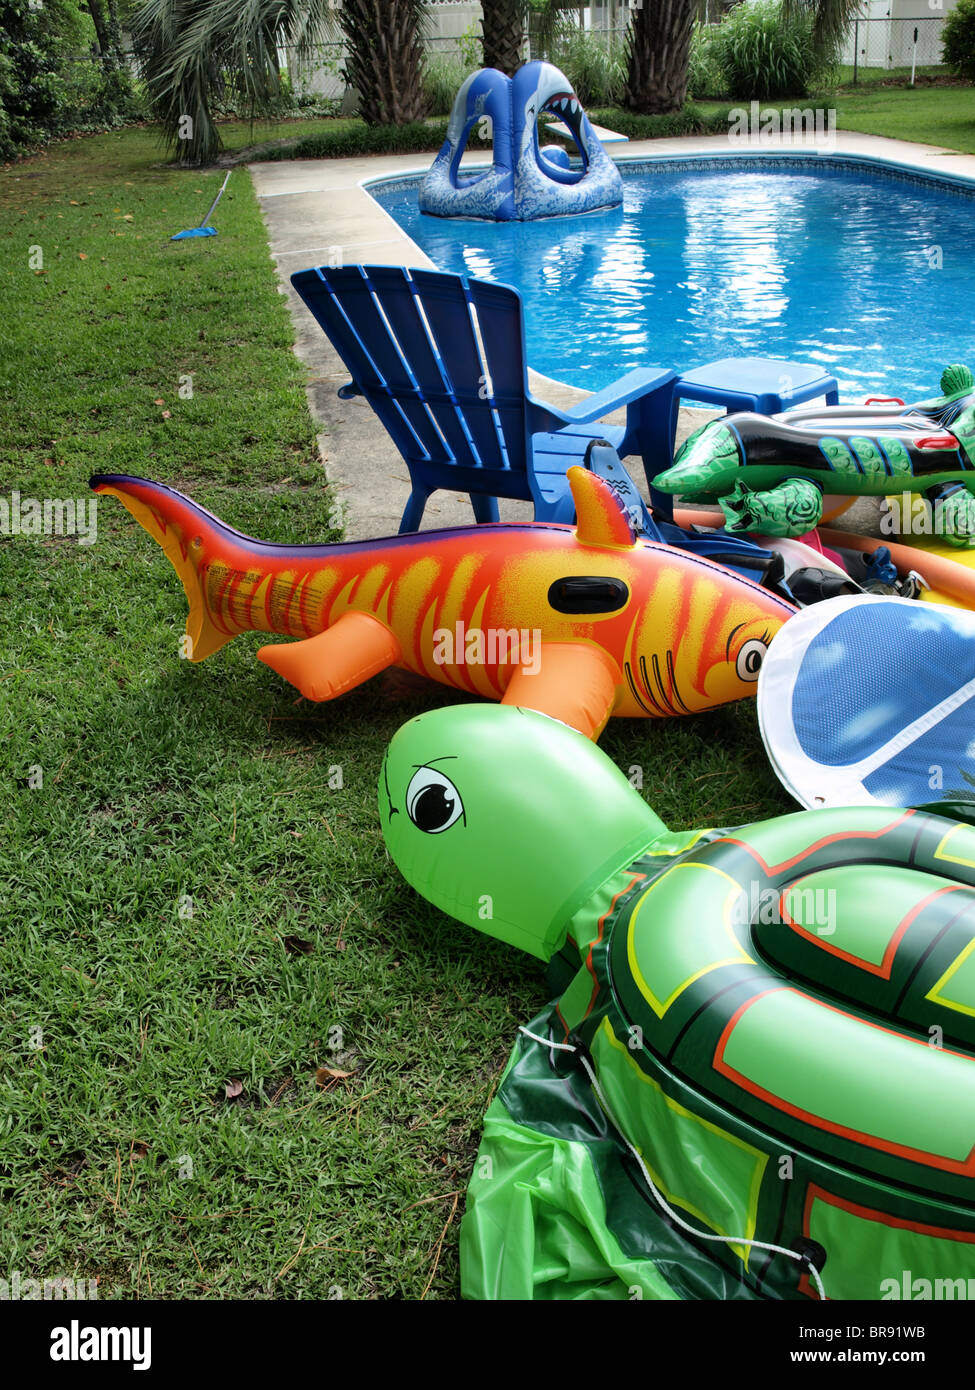 children's pool swimming toys floaters blown-up inflatable sitting beside the edge of a garden backyard with croc Stock Photo